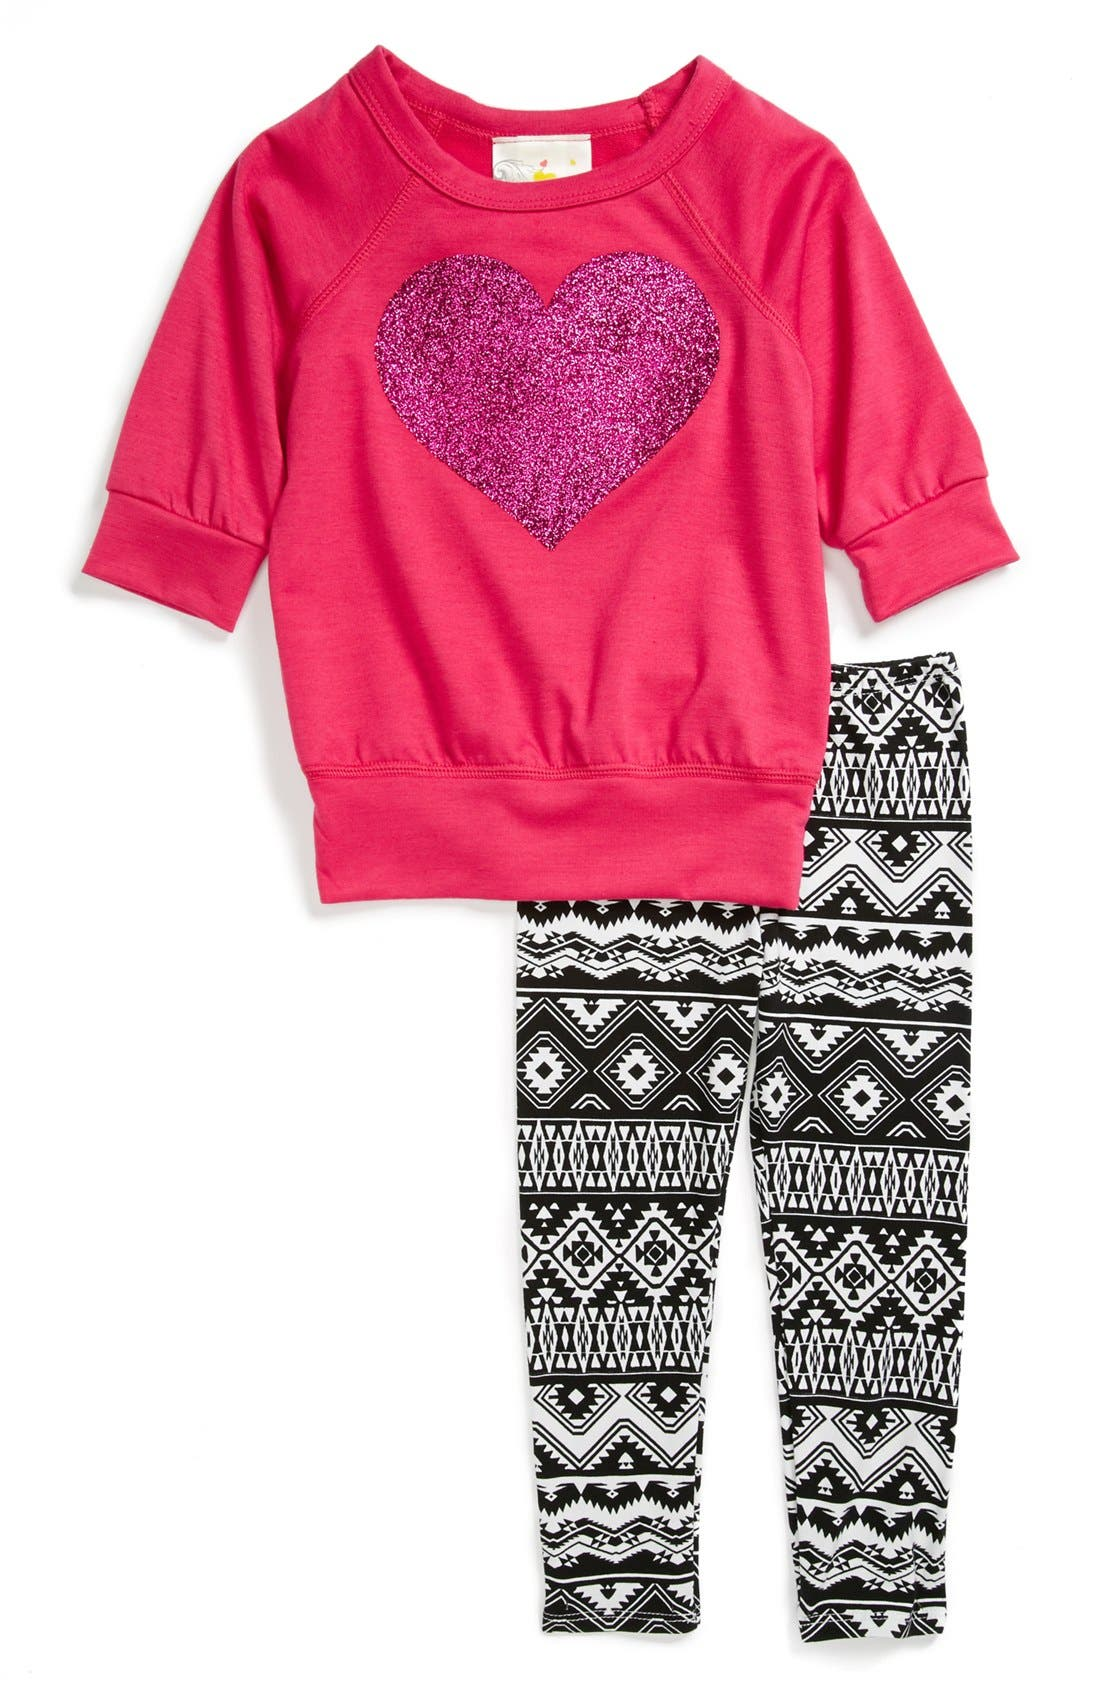 Alternate Image 1 Selected - Jenna & Jessie Glitter Tee & Leggings (Toddler Girls)